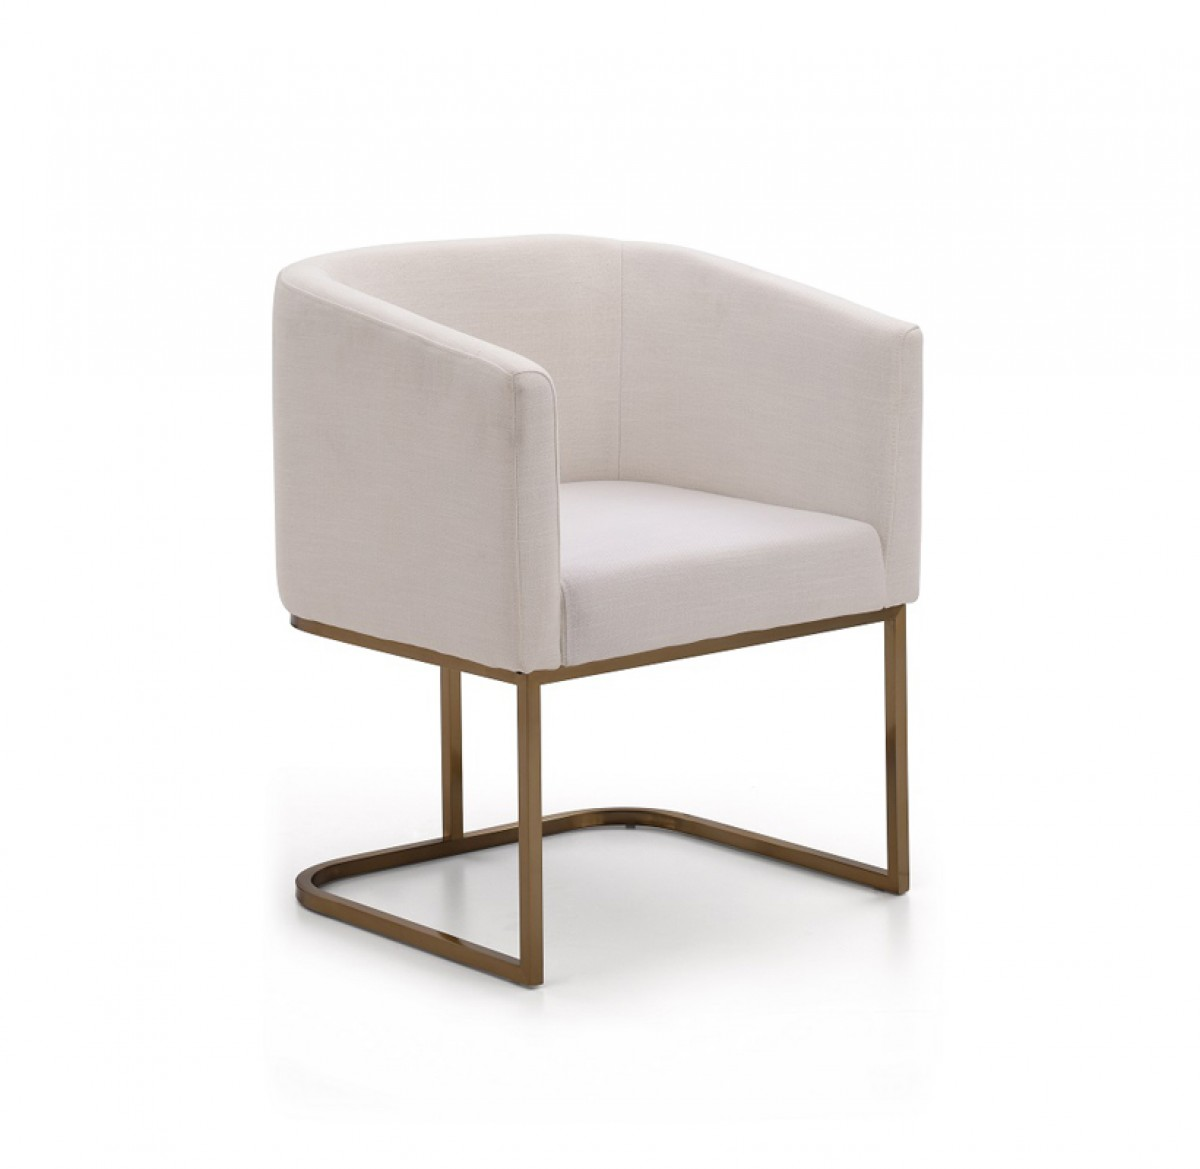 Modrest yukon modern white fabric and antique brass dining for Modern room chairs